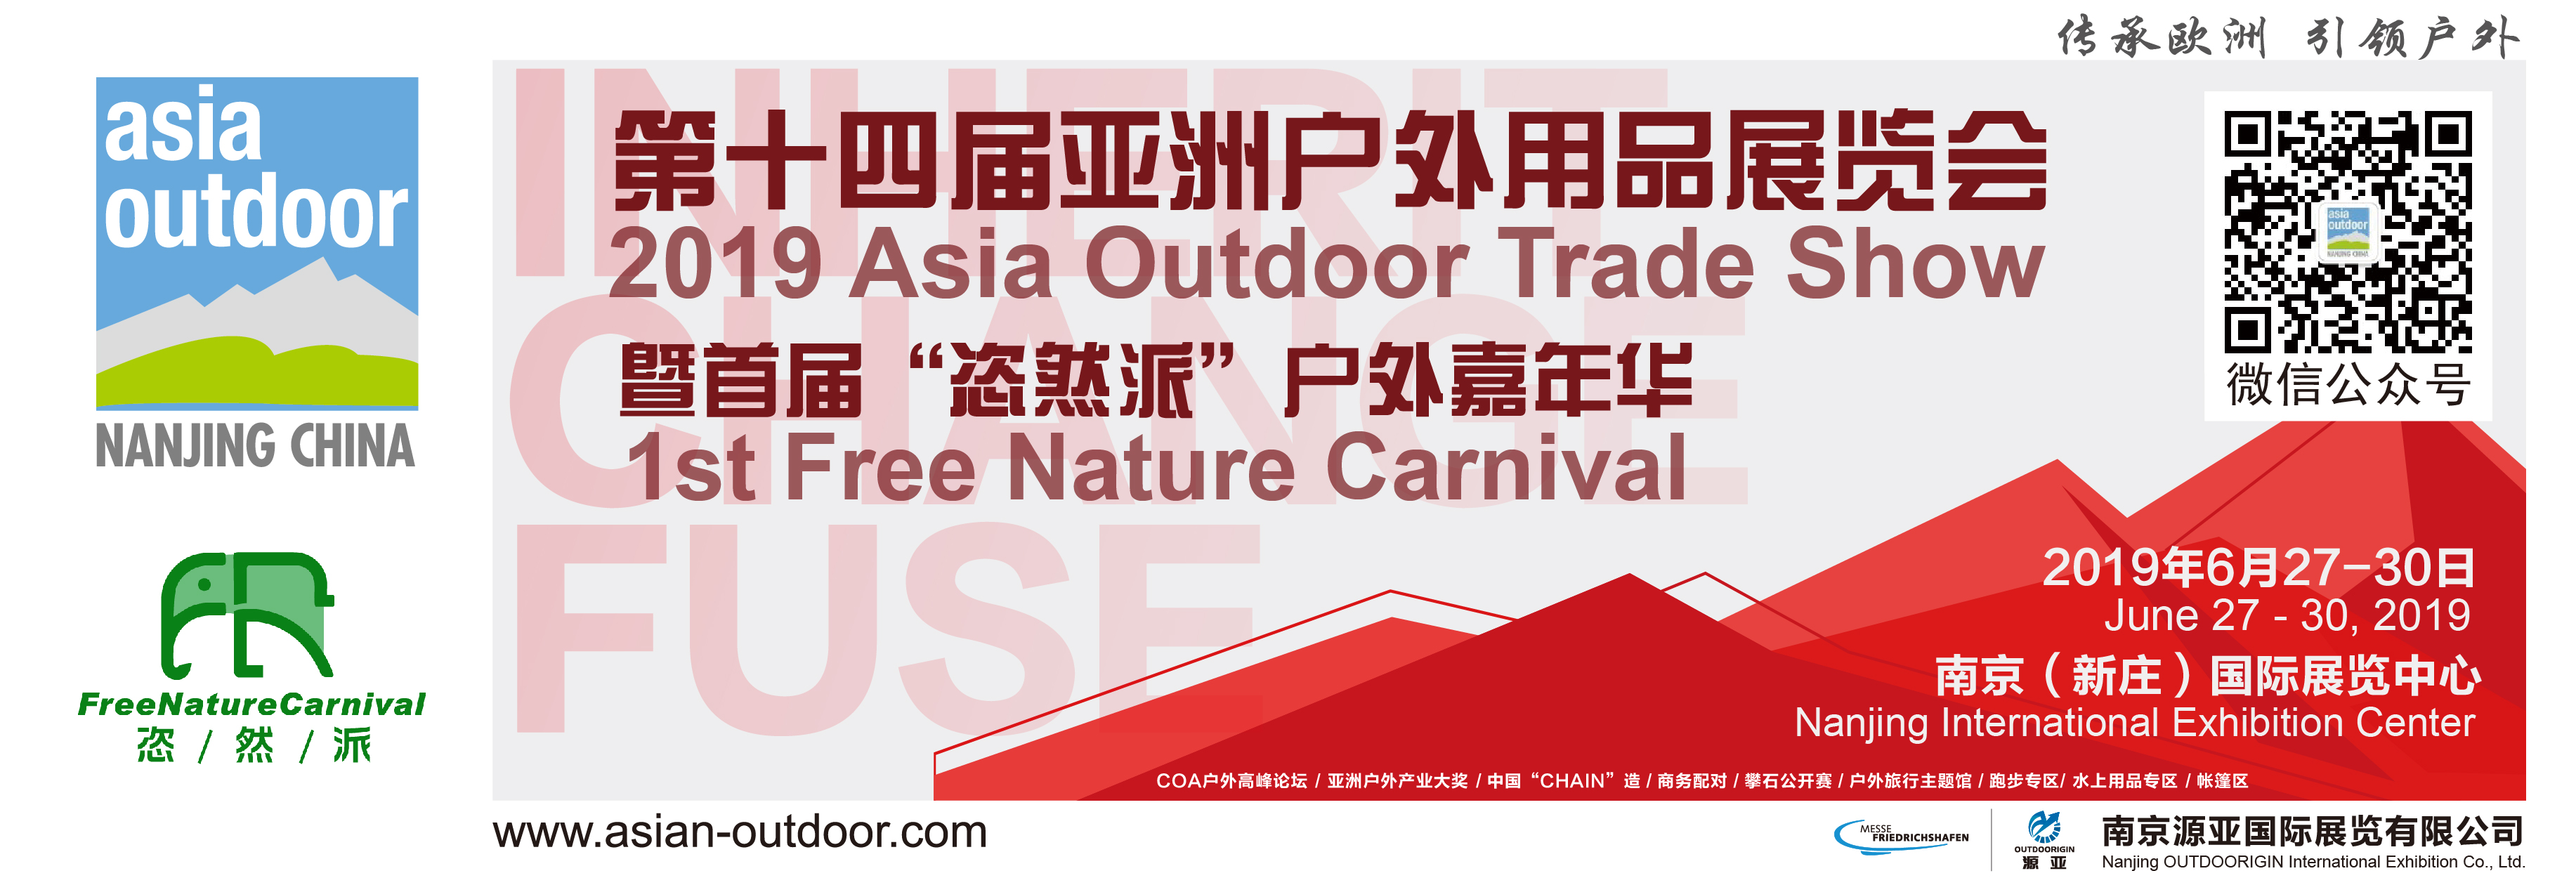 http://www.asian-outdoor.com/